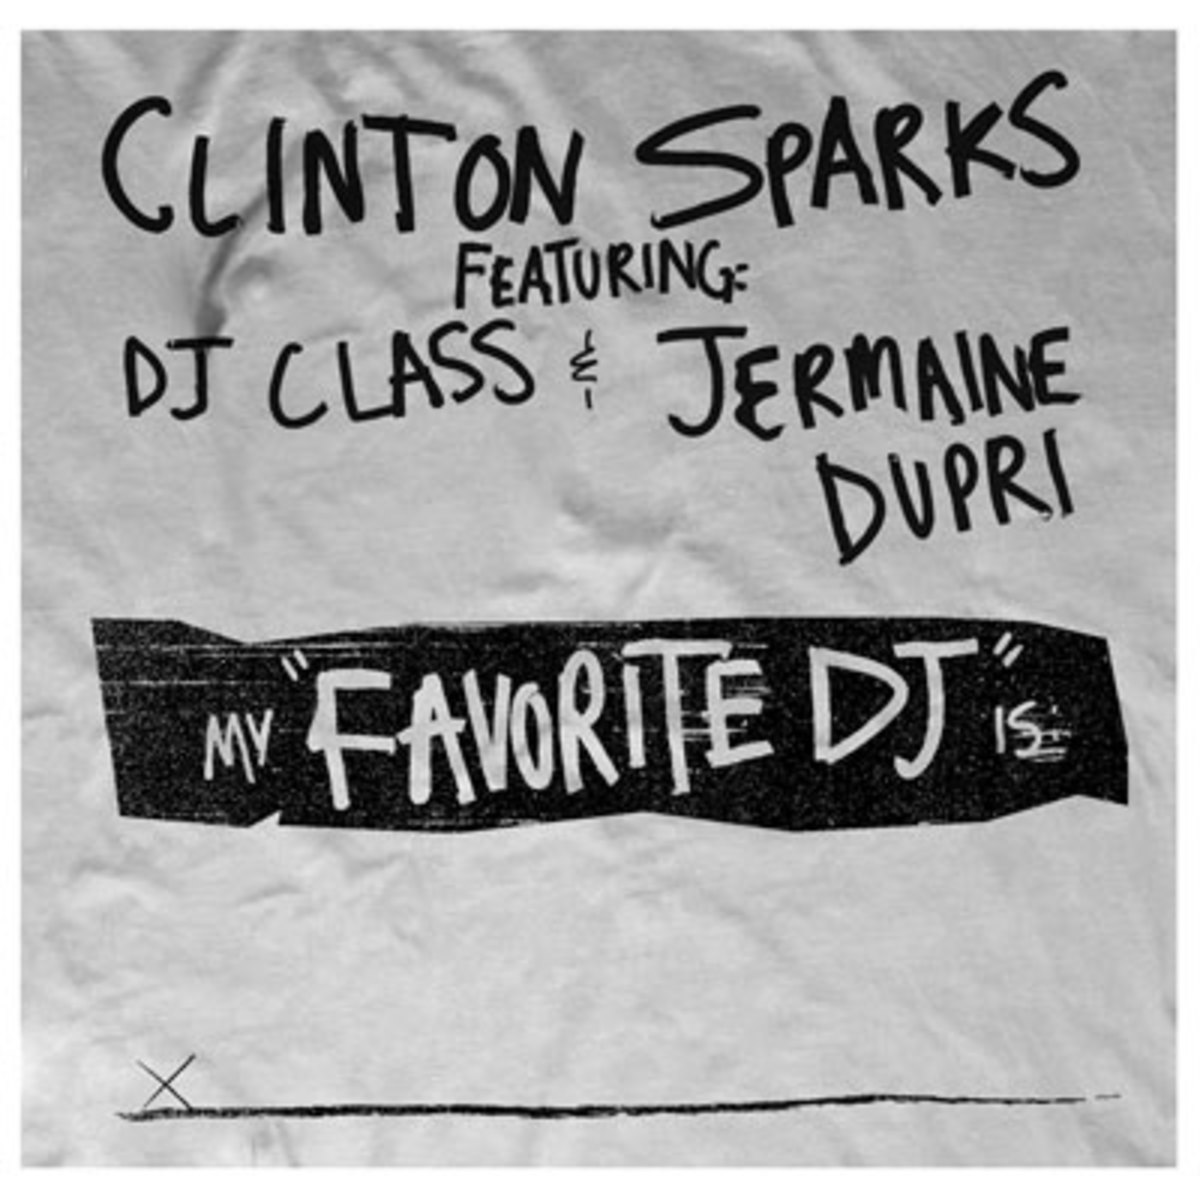 clintonsparks-favoritedj.jpg